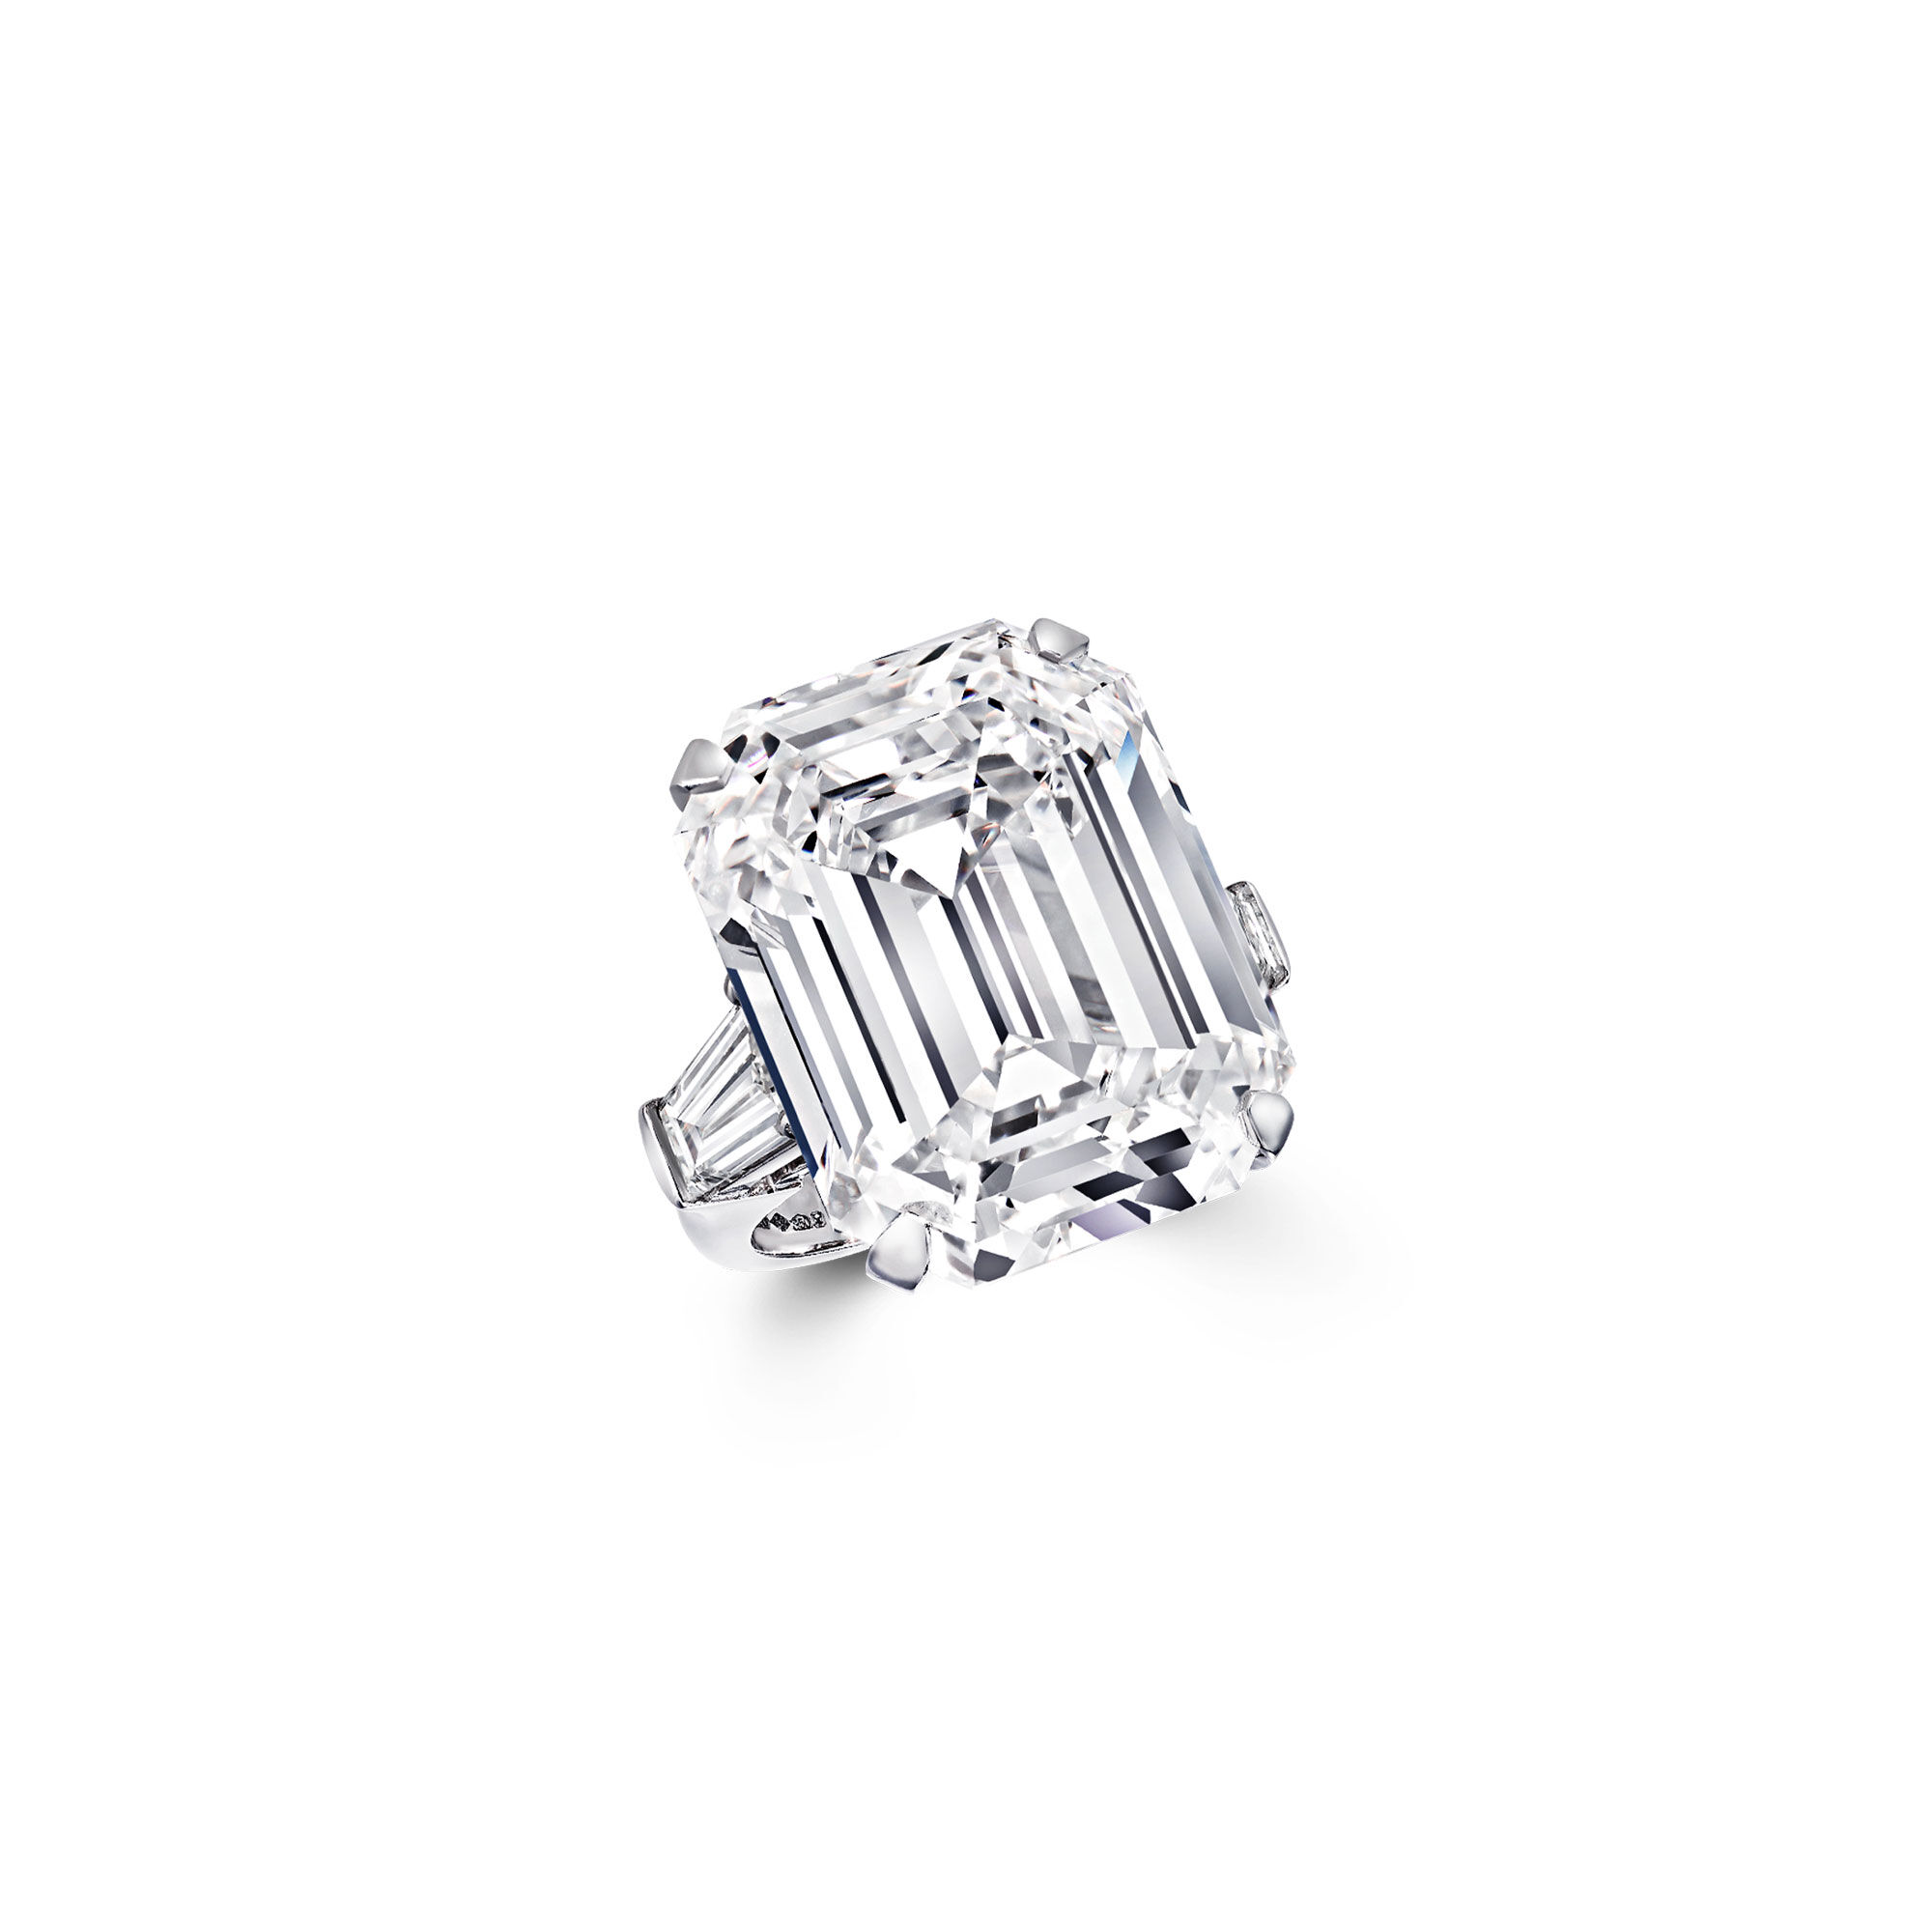 An emerald cut white diamond ring by Graff